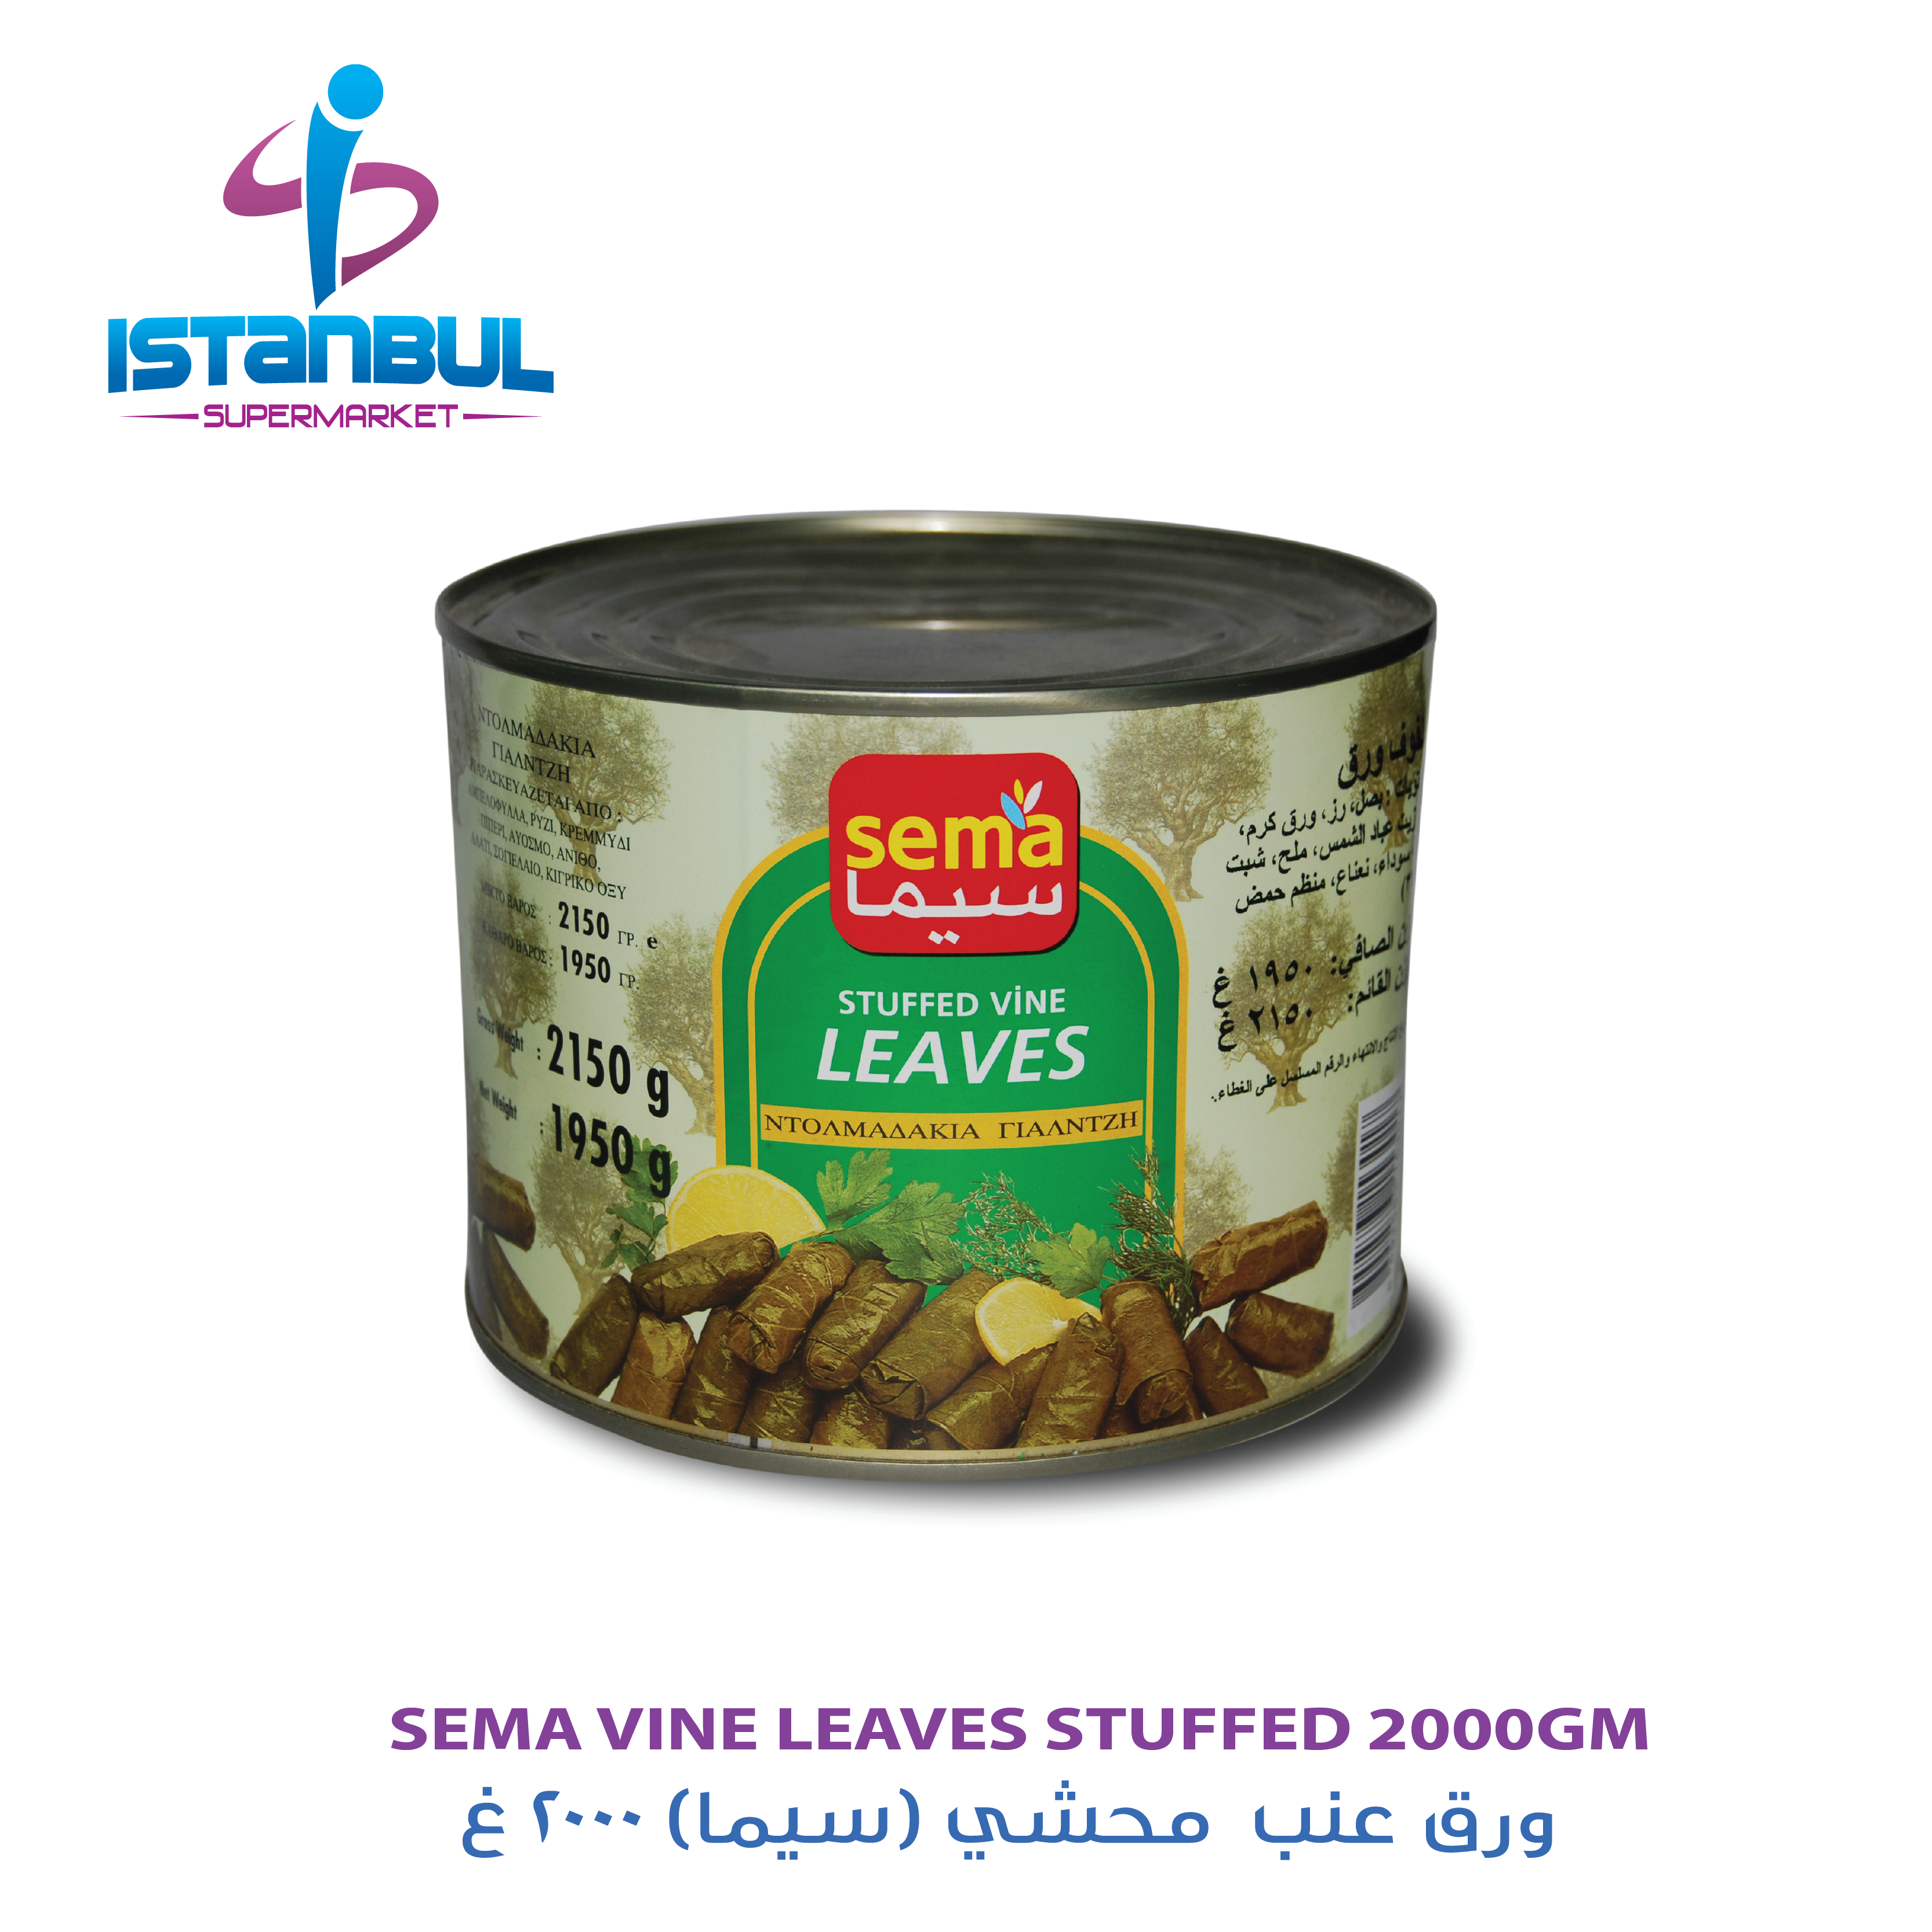 Sema Stuffed Vine Leaves Are So Good It S Almost Like Home Made Grab Them Now At The Nearest Istanbulsupermarket ورق ع Supermarket Vine Leaves Coffee Cans